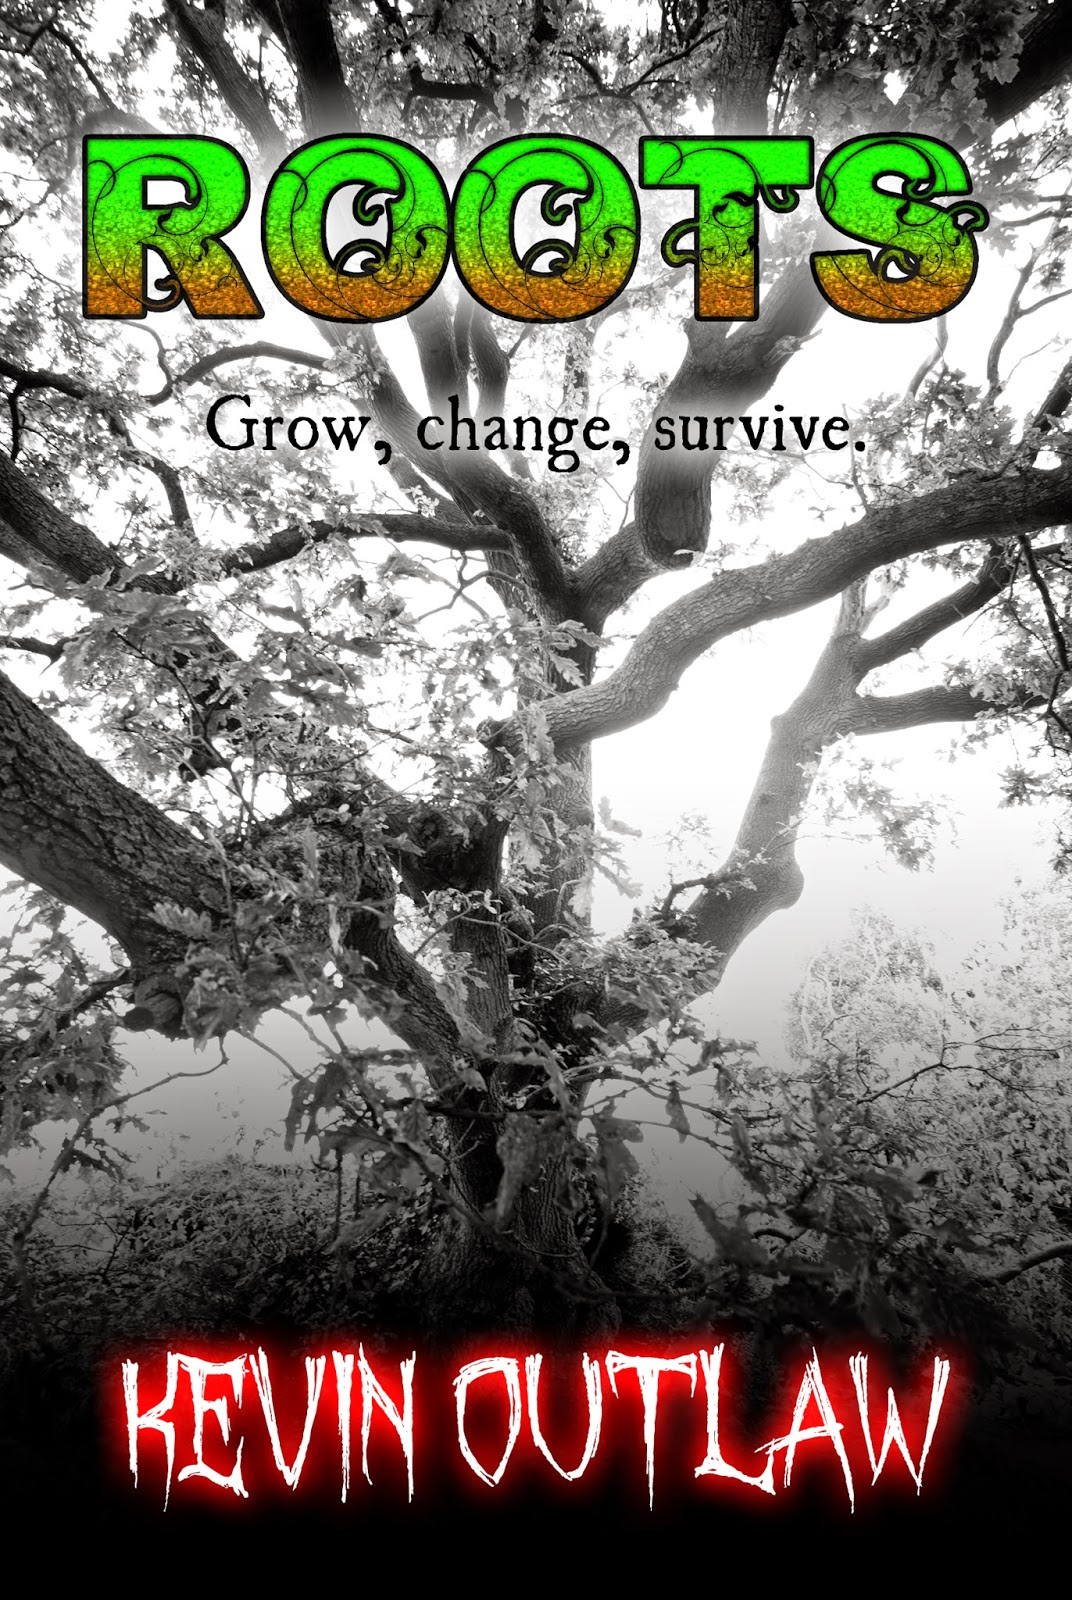 Roots, by Kevin Outlaw